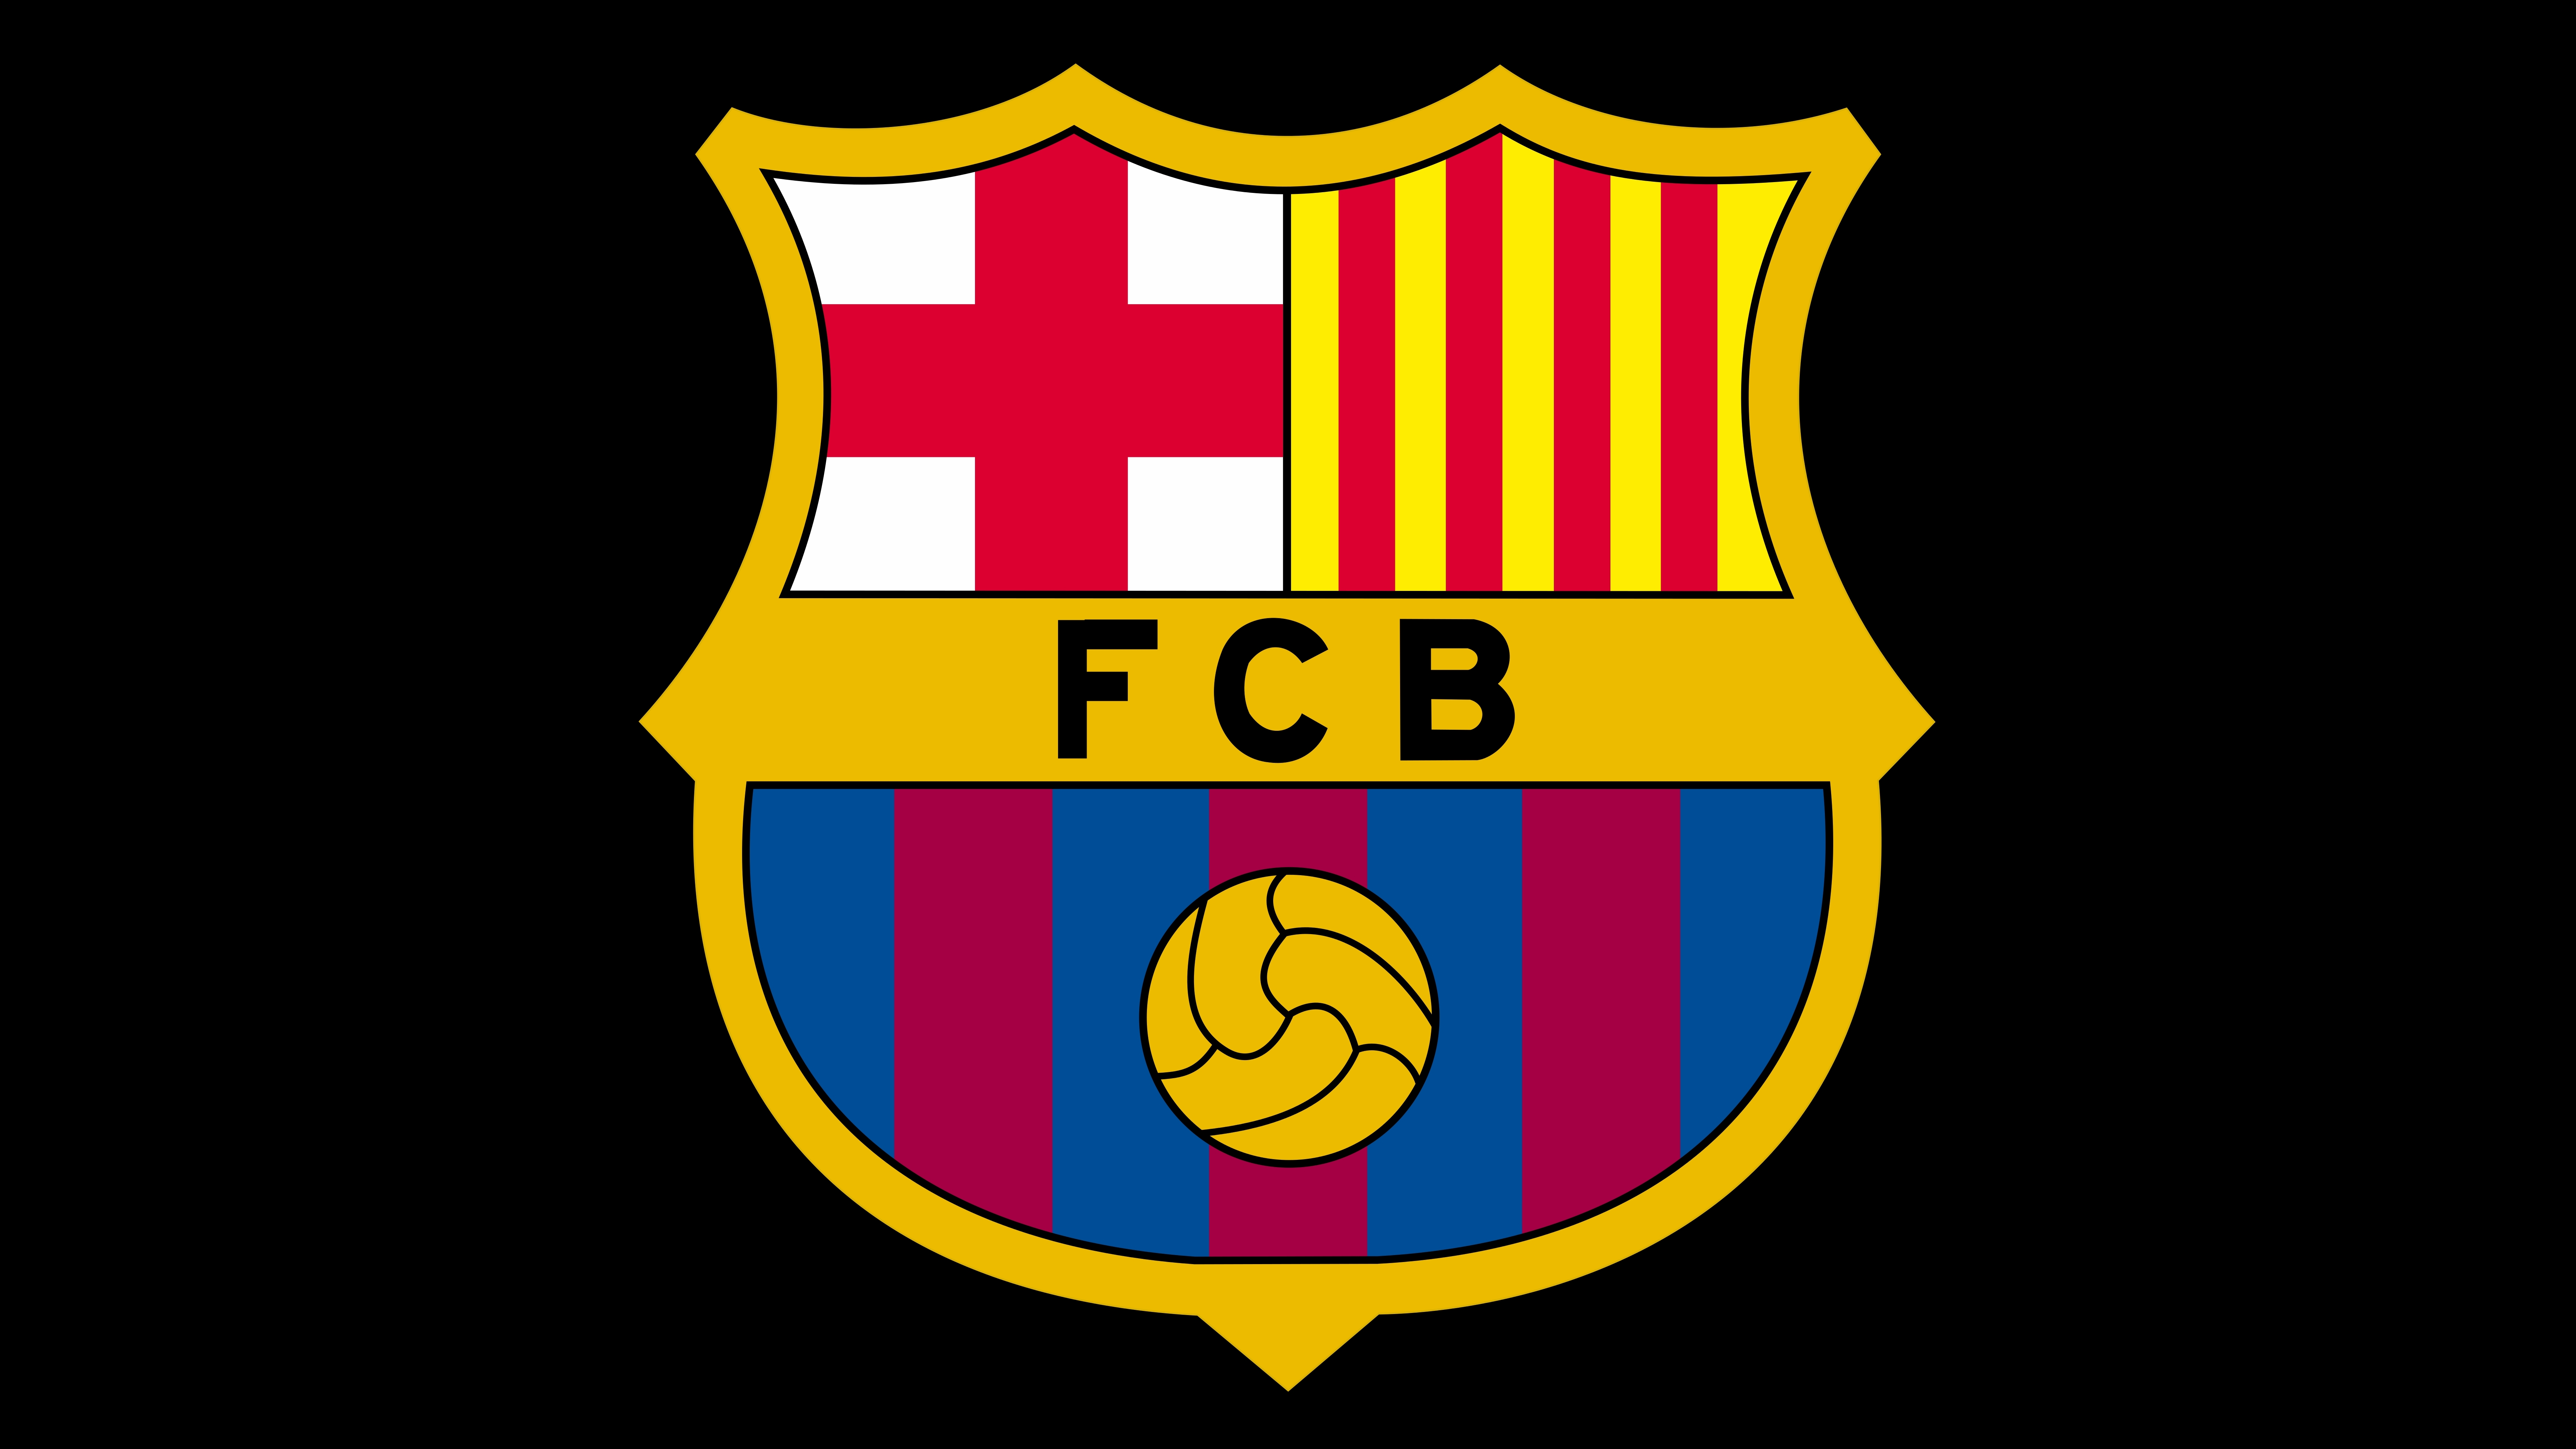 FC Barcelona Computer Wallpapers, Desktop Backgrounds ... Soccer Backgrounds For Iphone